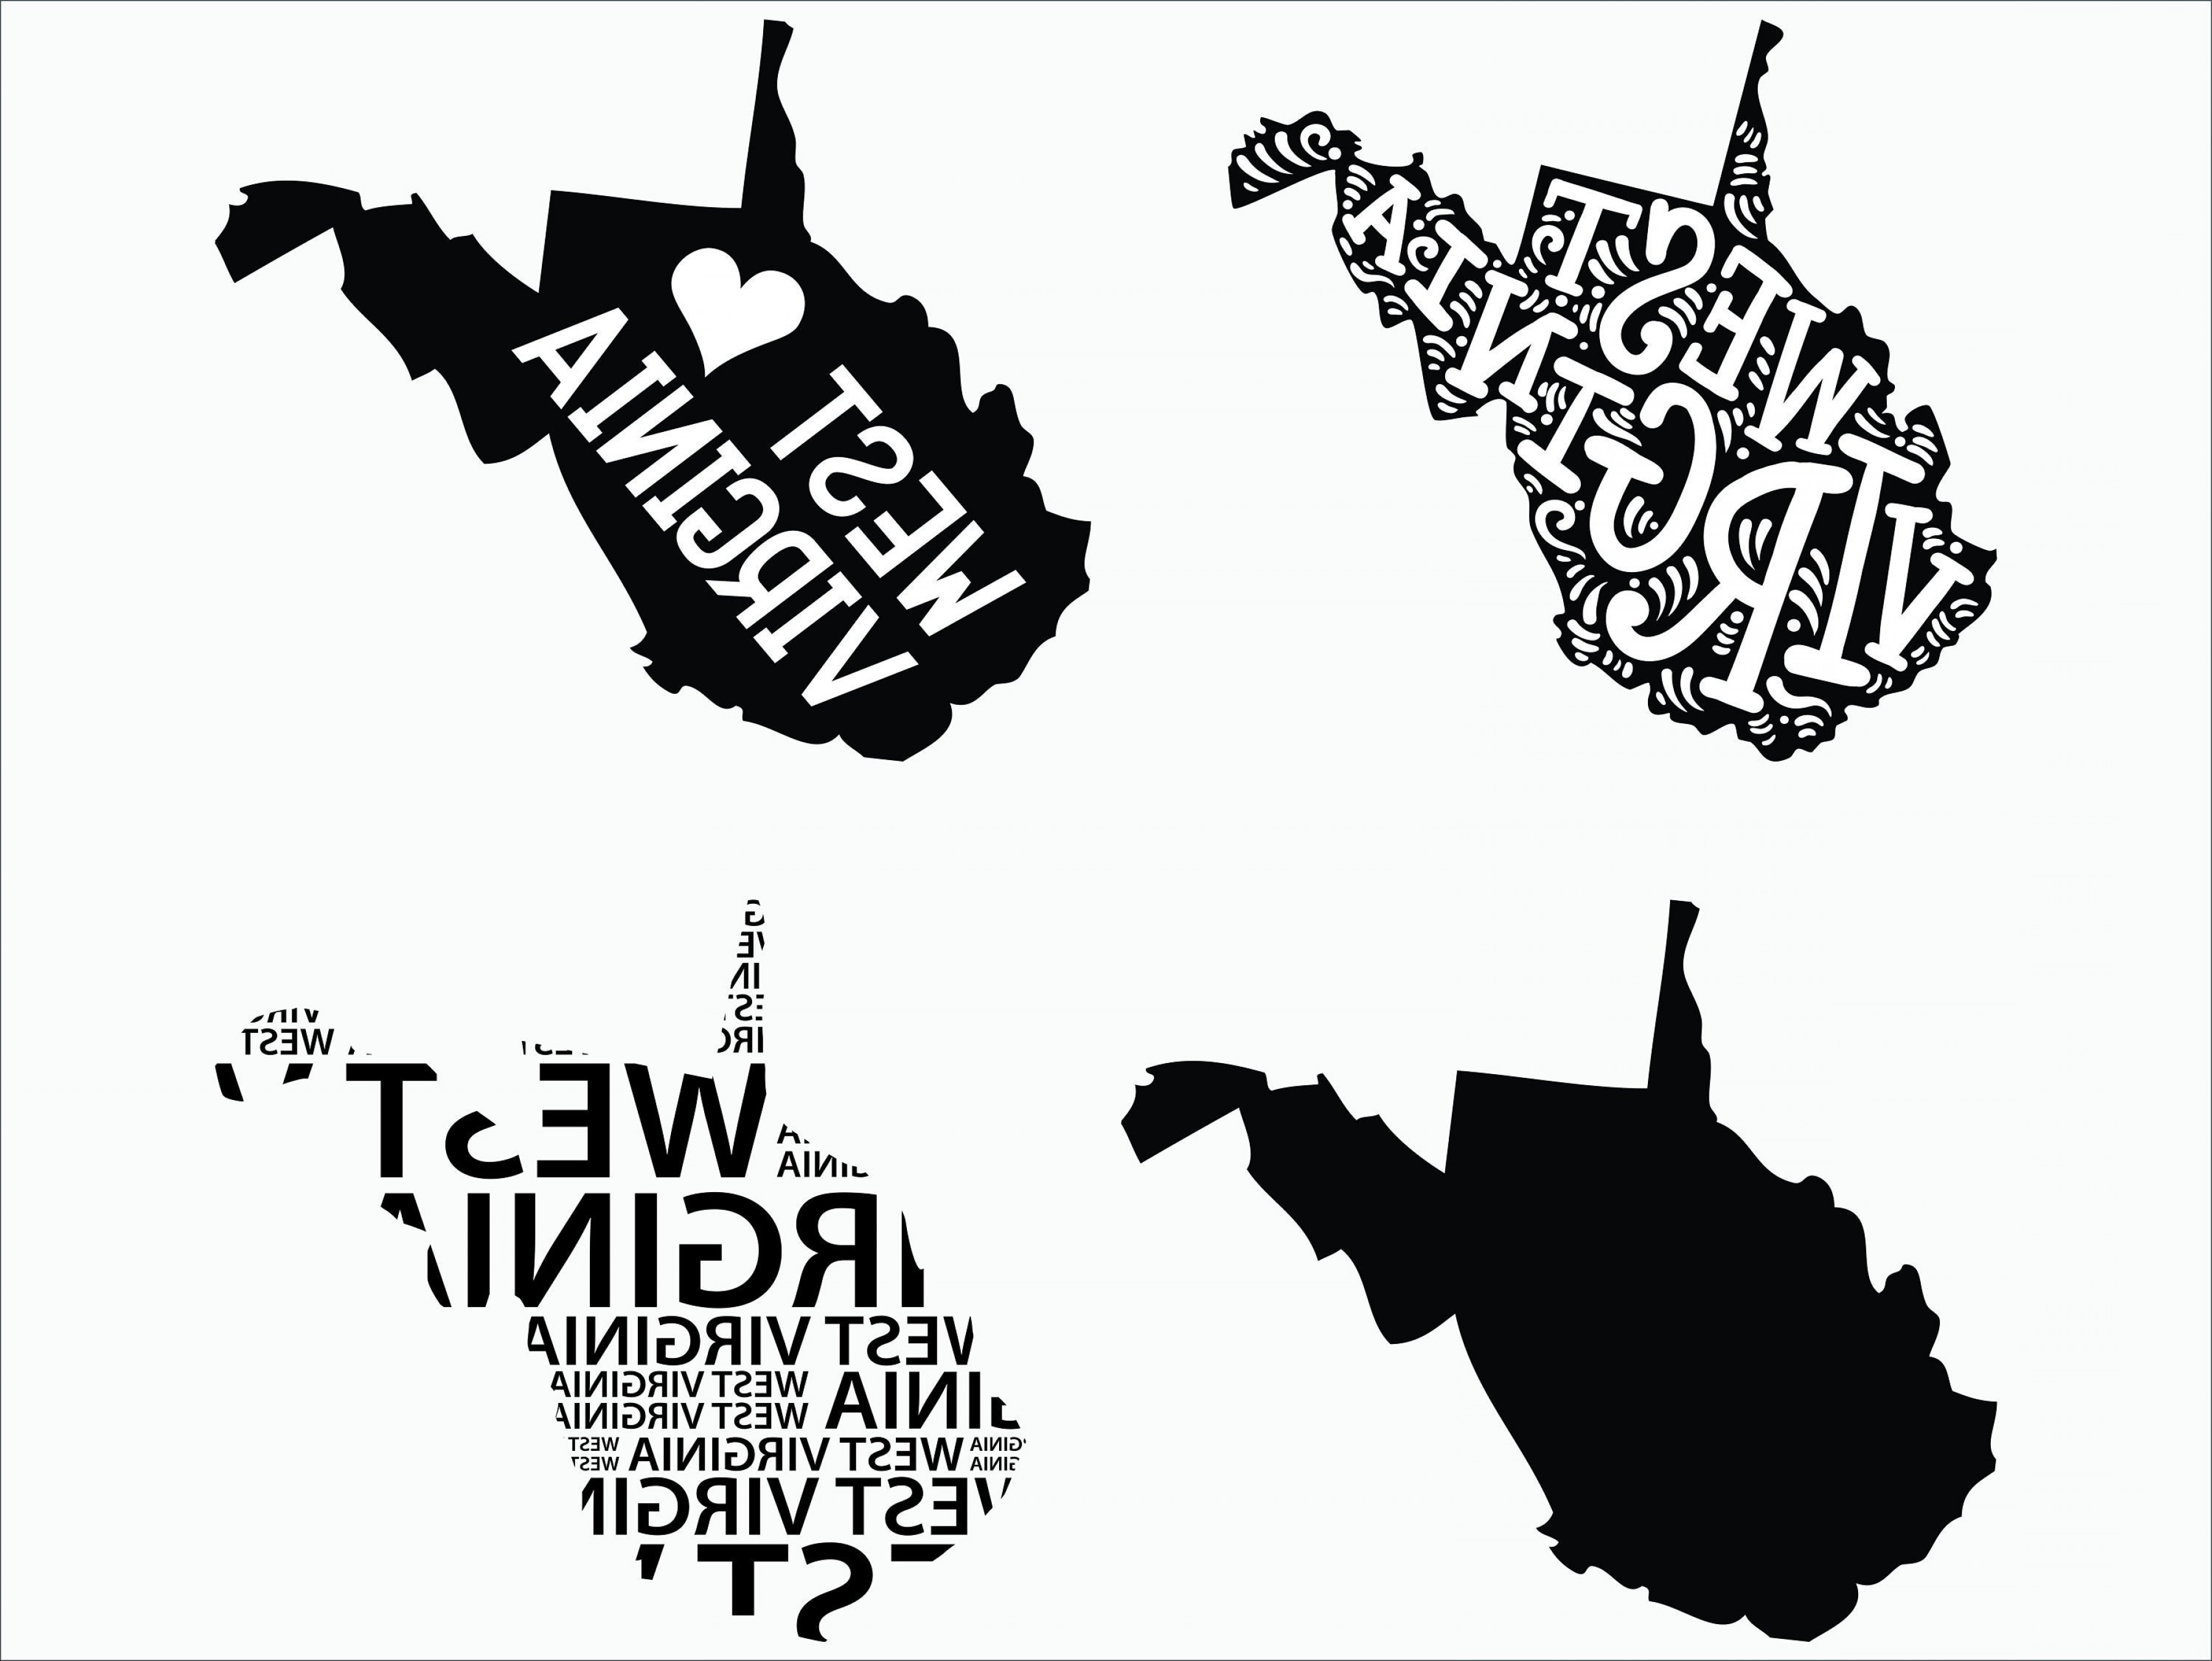 West Virginia Vector Files: West Virginia Designs Svg Dxf Png Eps